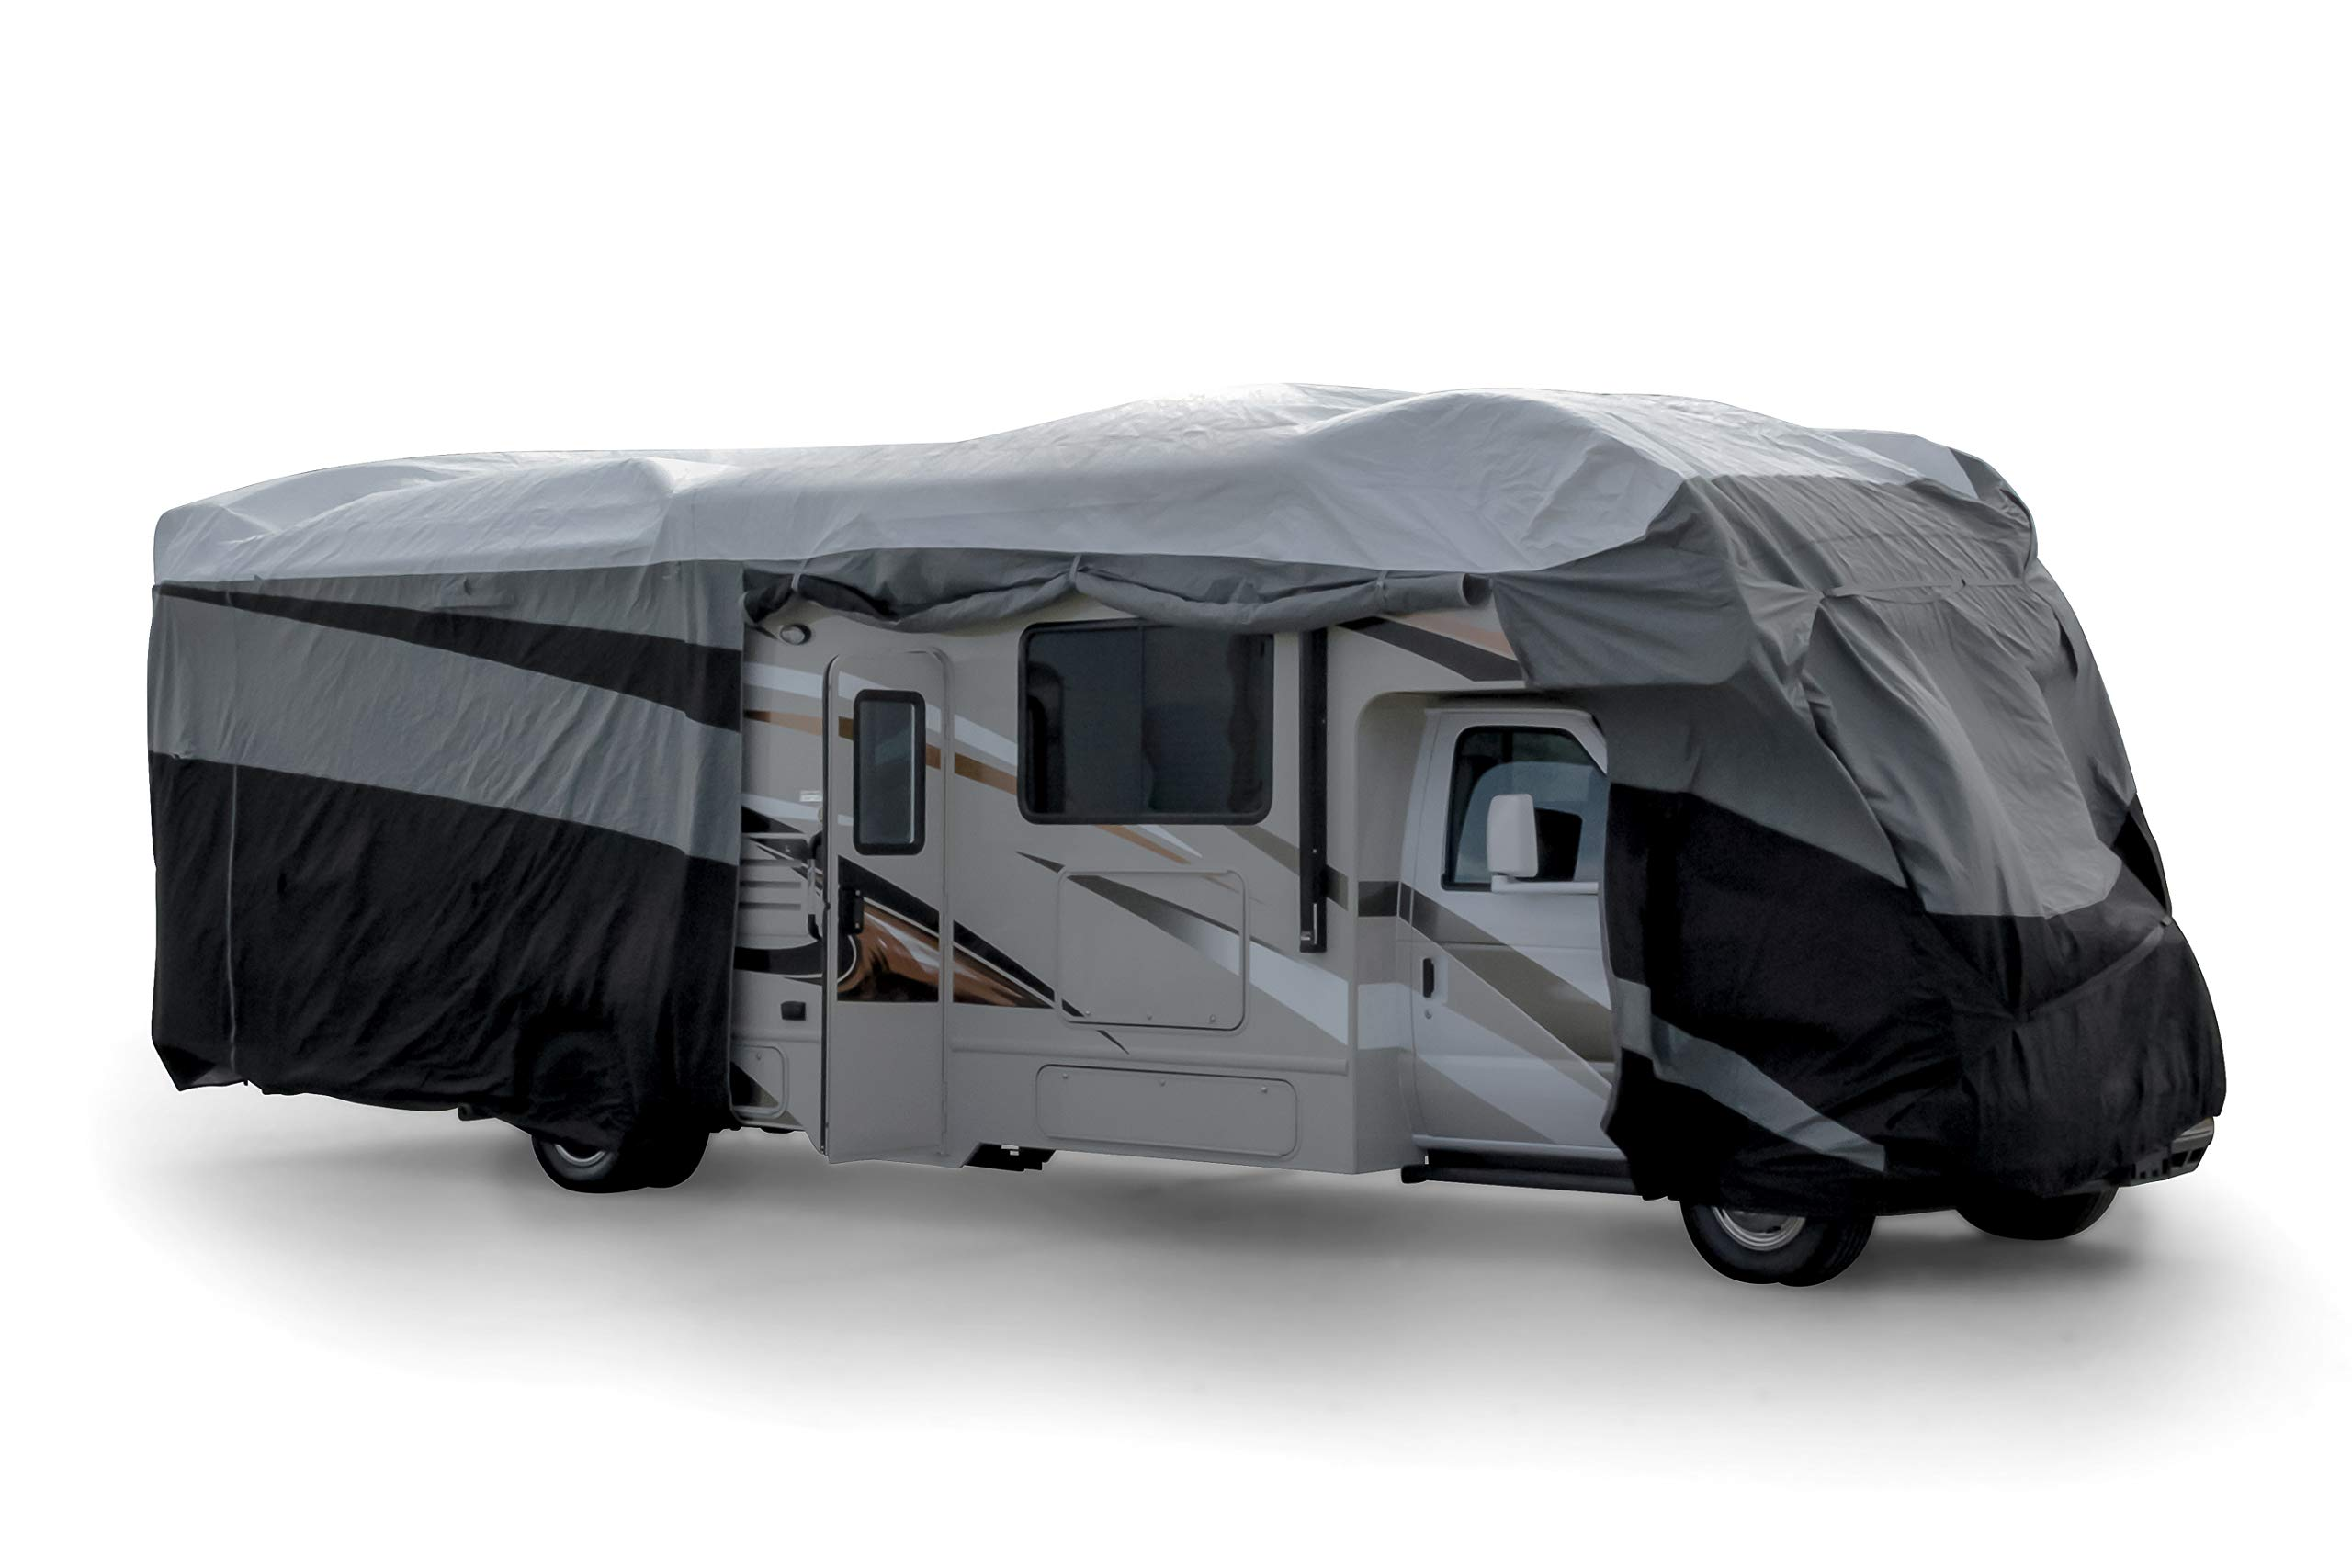 Camco ULTRAGuard Supreme Cover-Extremely Durable Design Fits Class C Model RVs 23' -26', Weatherproof with UV Protection and Dupont Tyvek Top (56114) by Camco (Image #4)